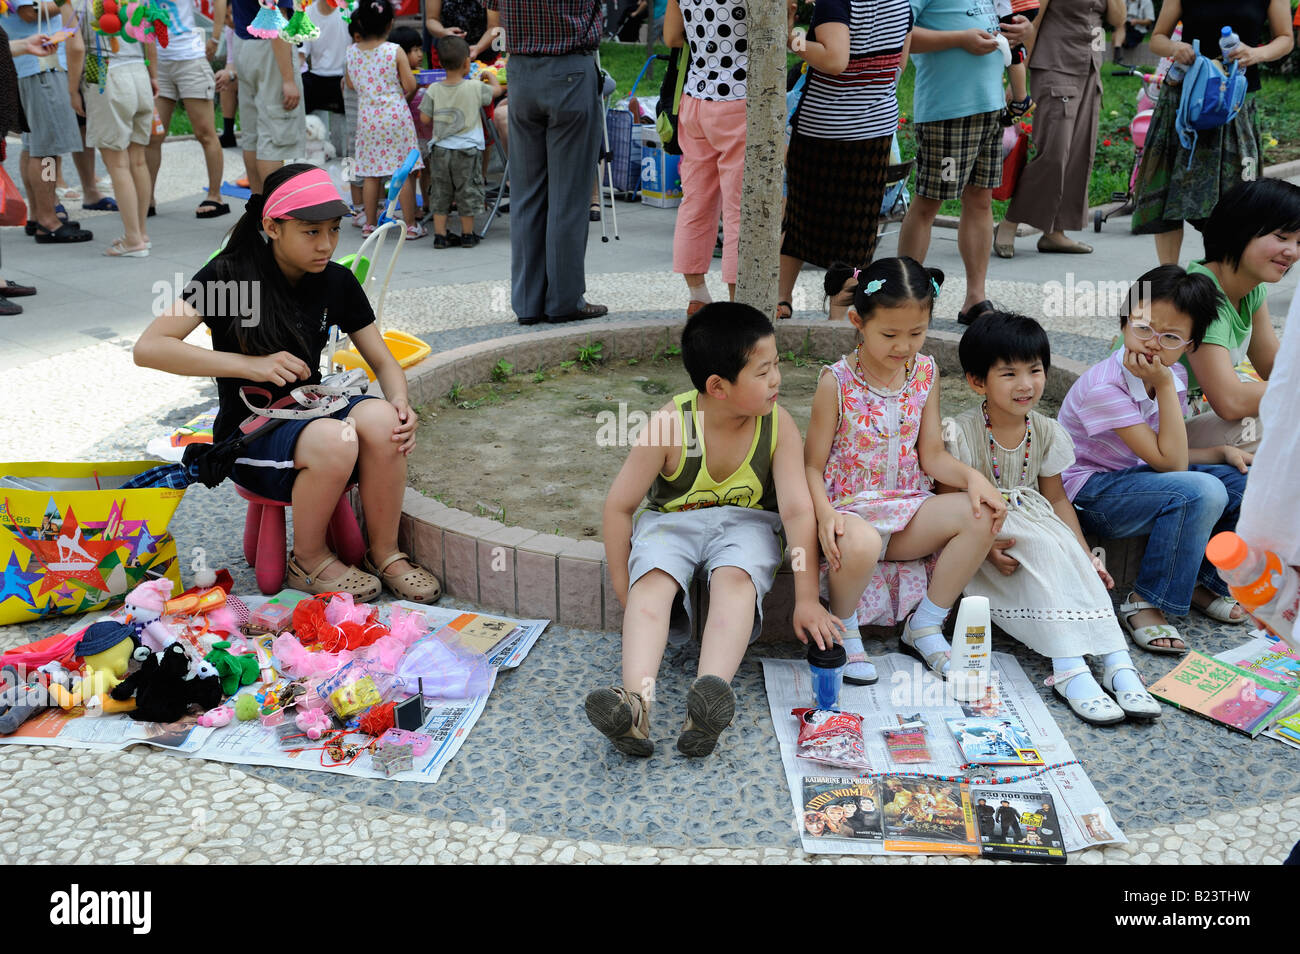 Teenages sell uesd goods at flea market on Sunday in a community in Beijing, China. 13-Jul-2008 Stock Photo